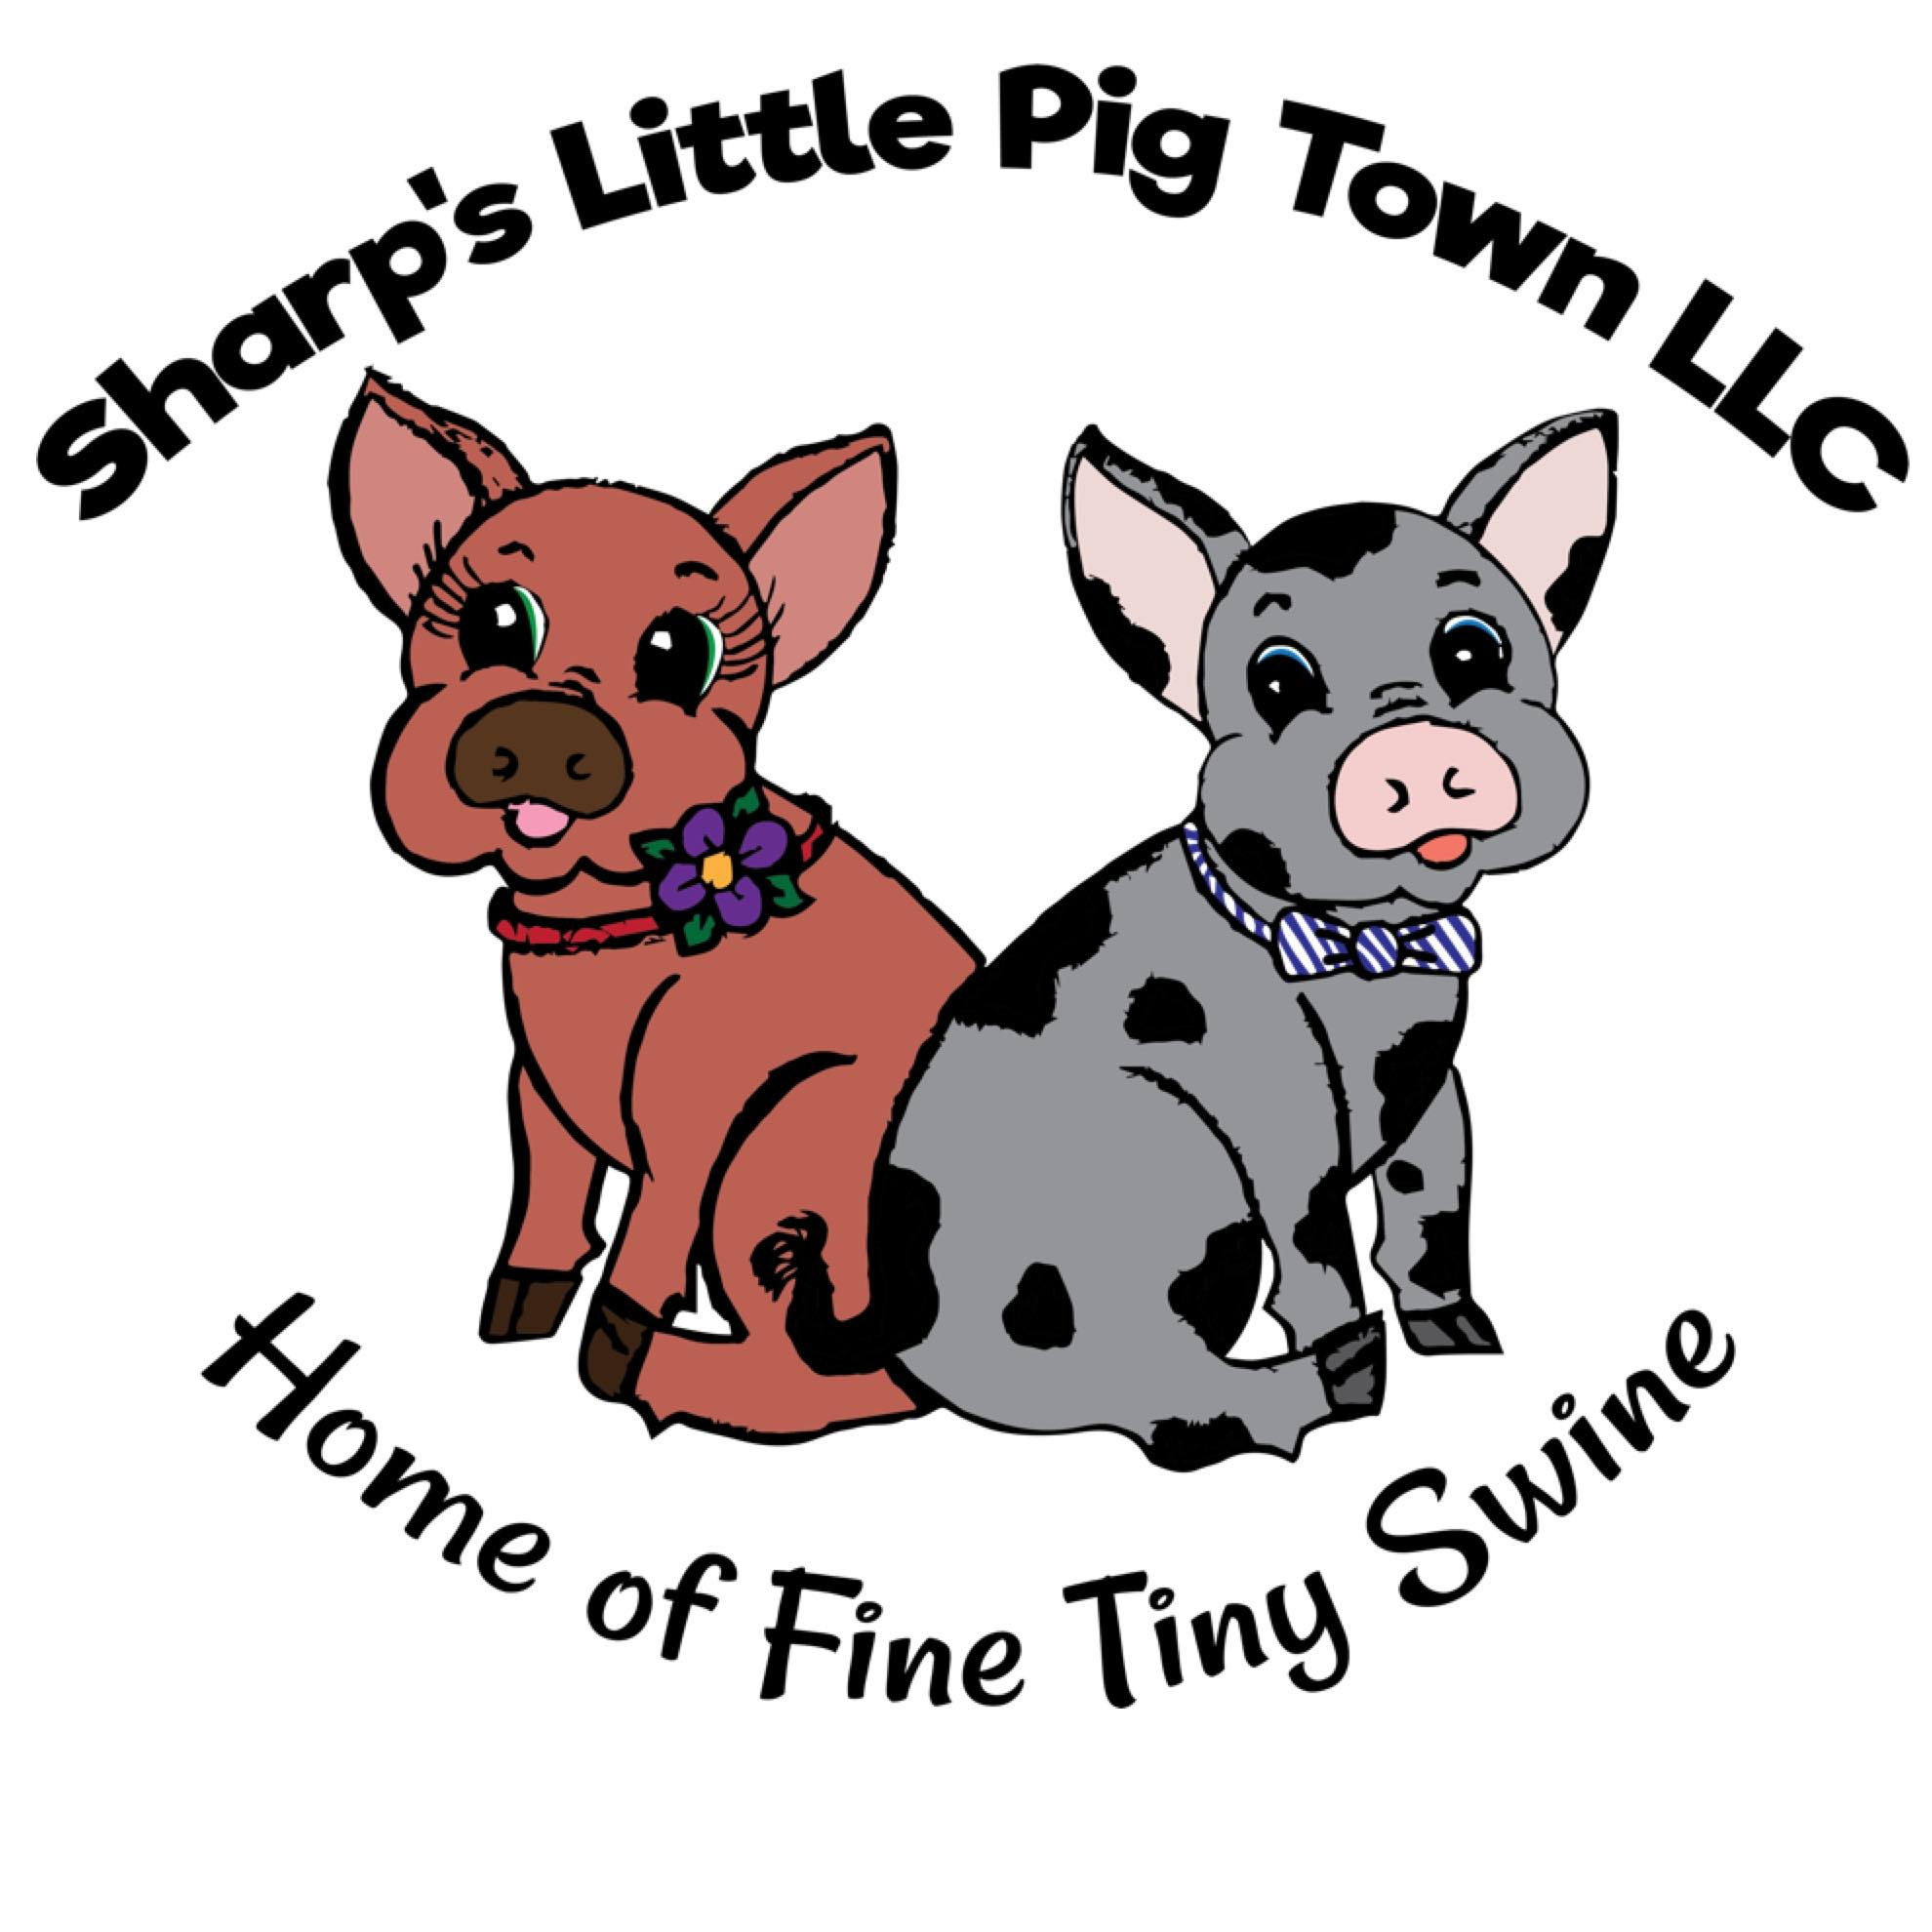 sharp's little pig town